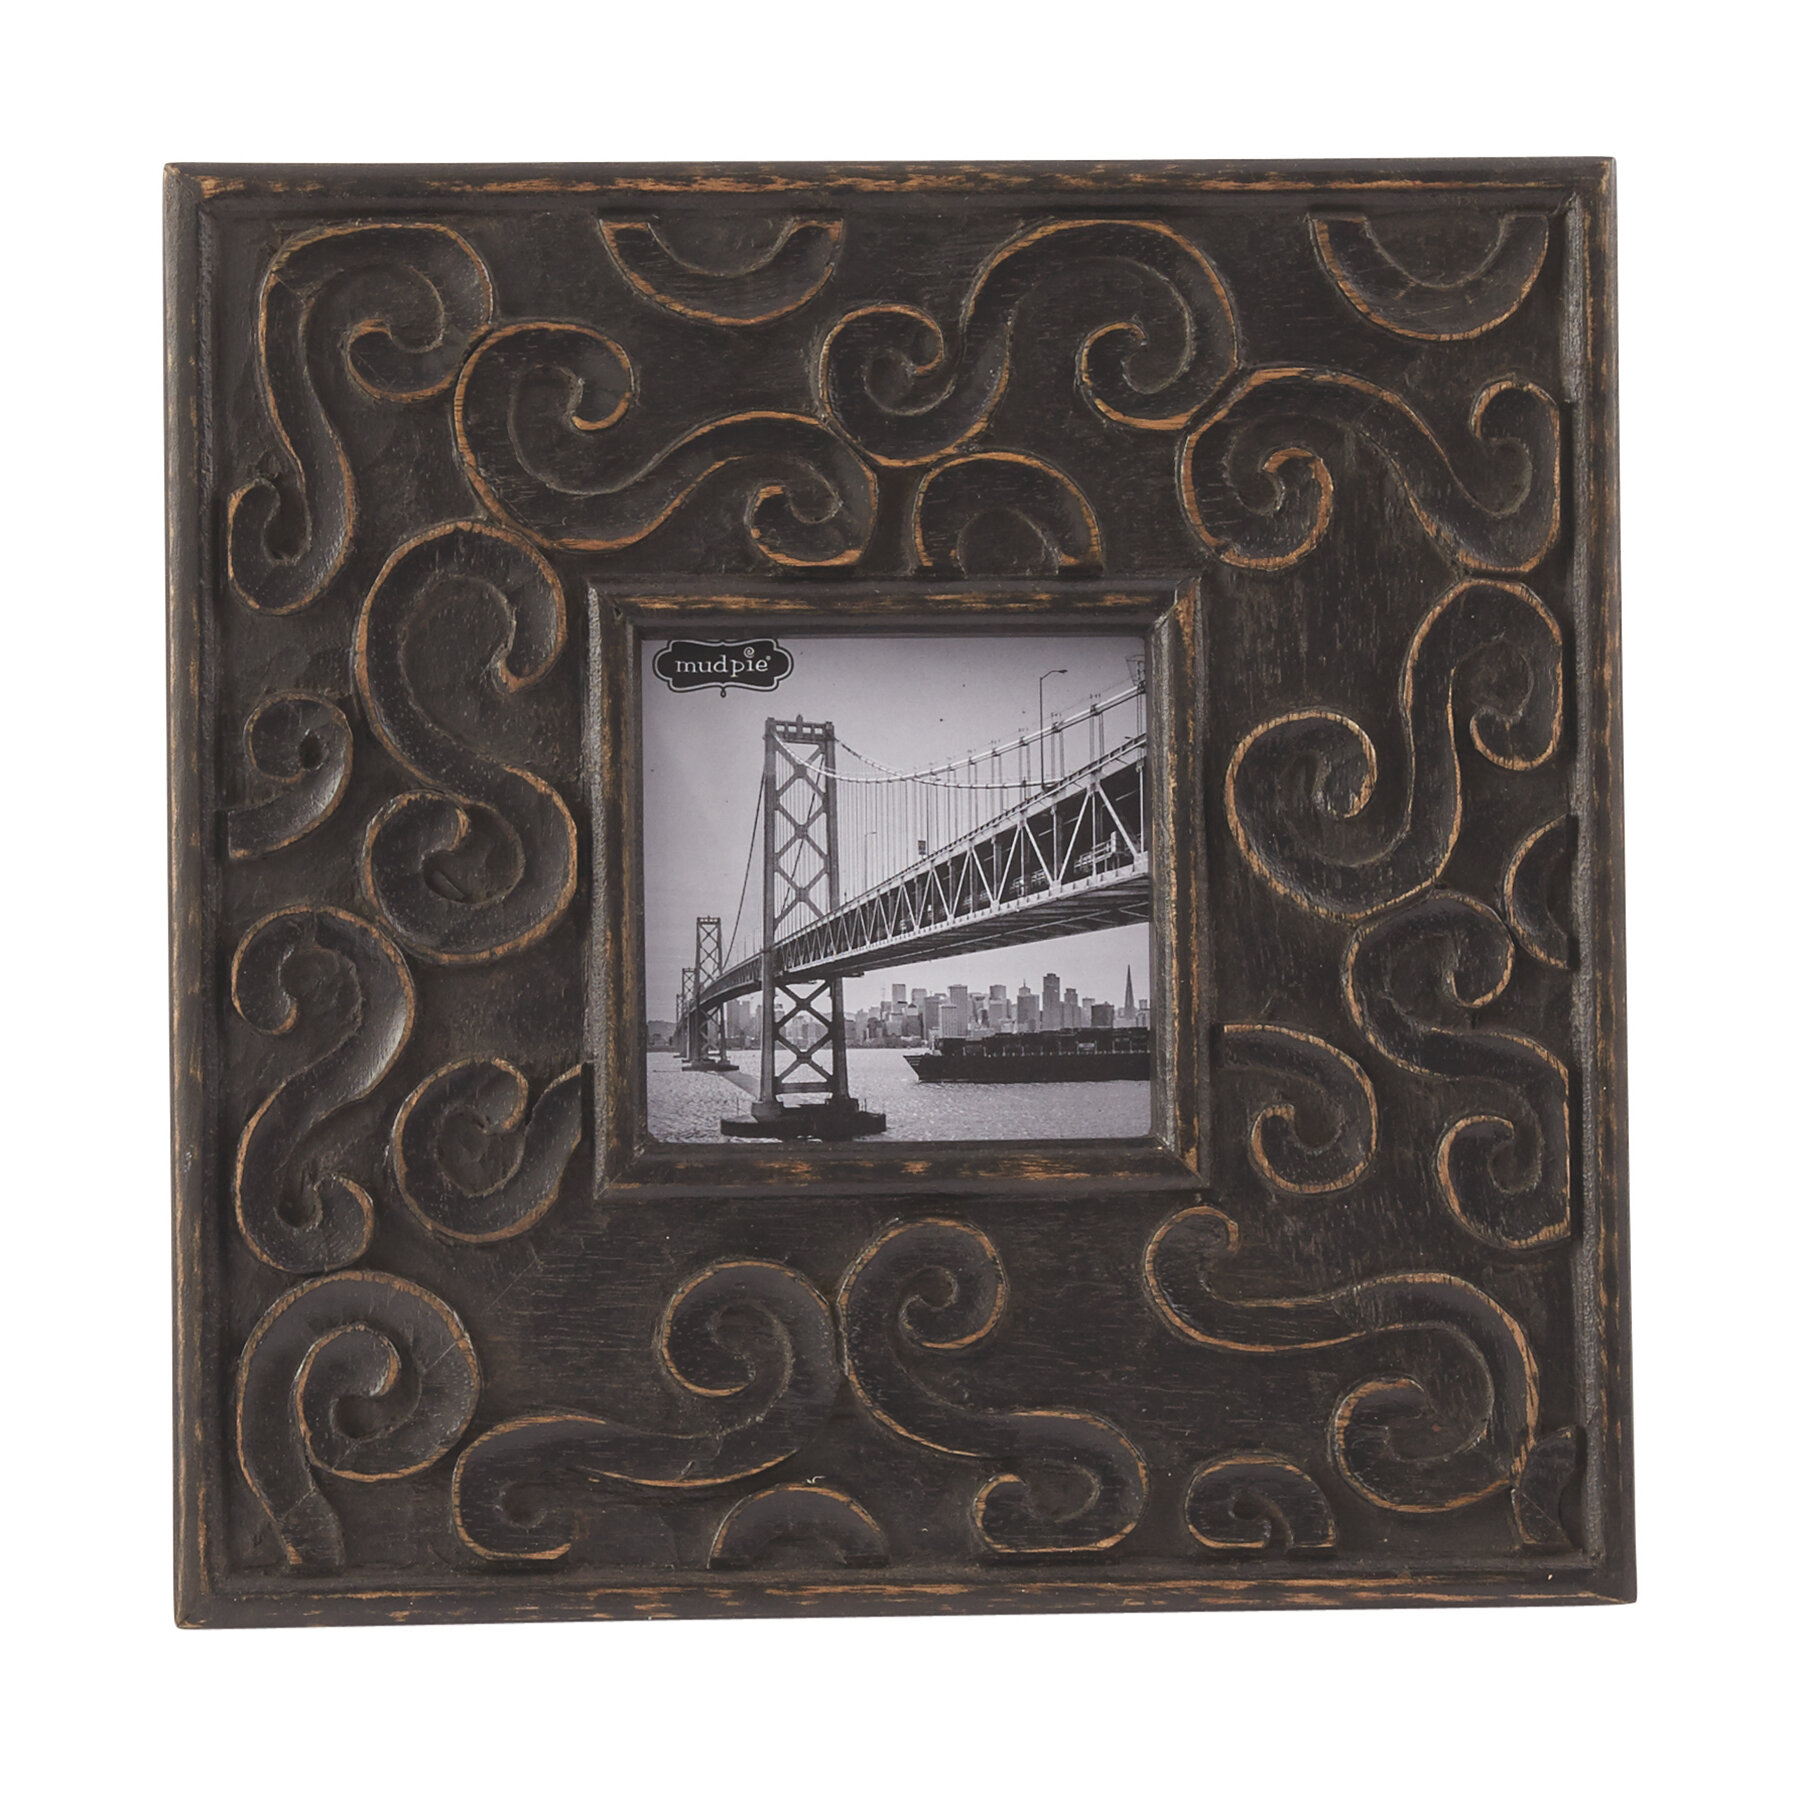 Mud pie carved wood scroll picture frame reviews wayfair jeuxipadfo Image collections